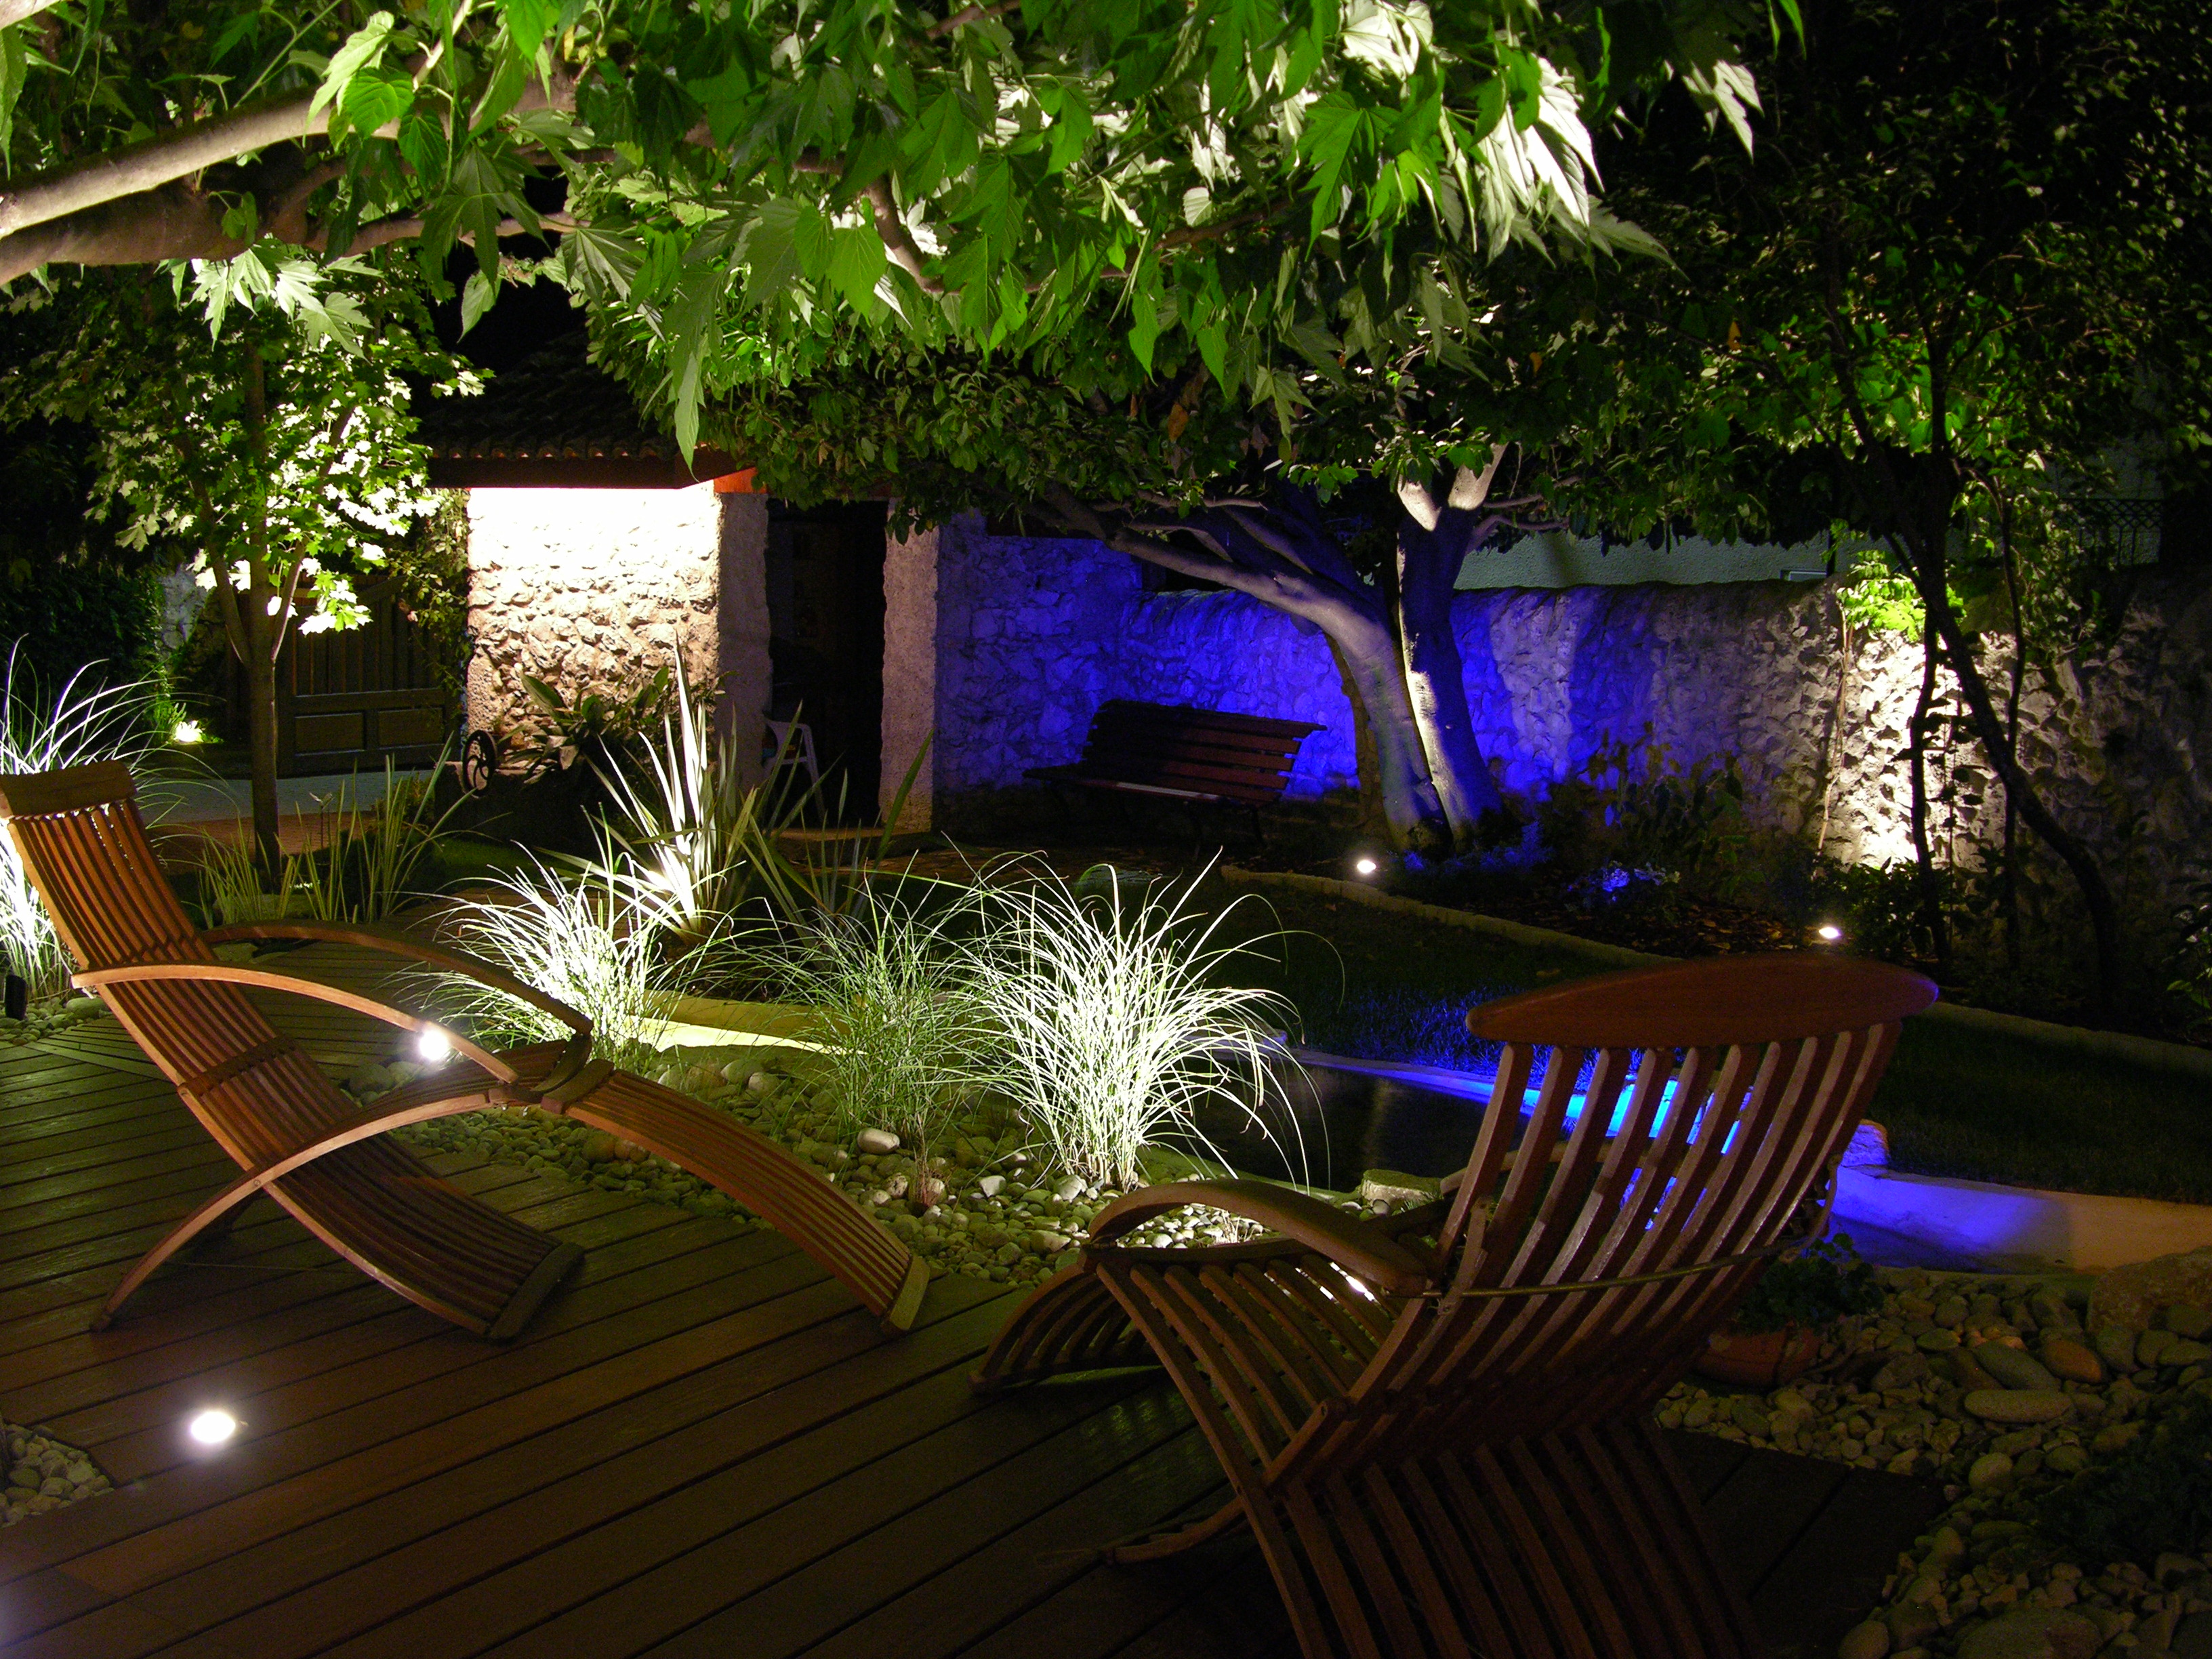 Comment mettre son jardin en lumi re for Lumiere maison exterieur